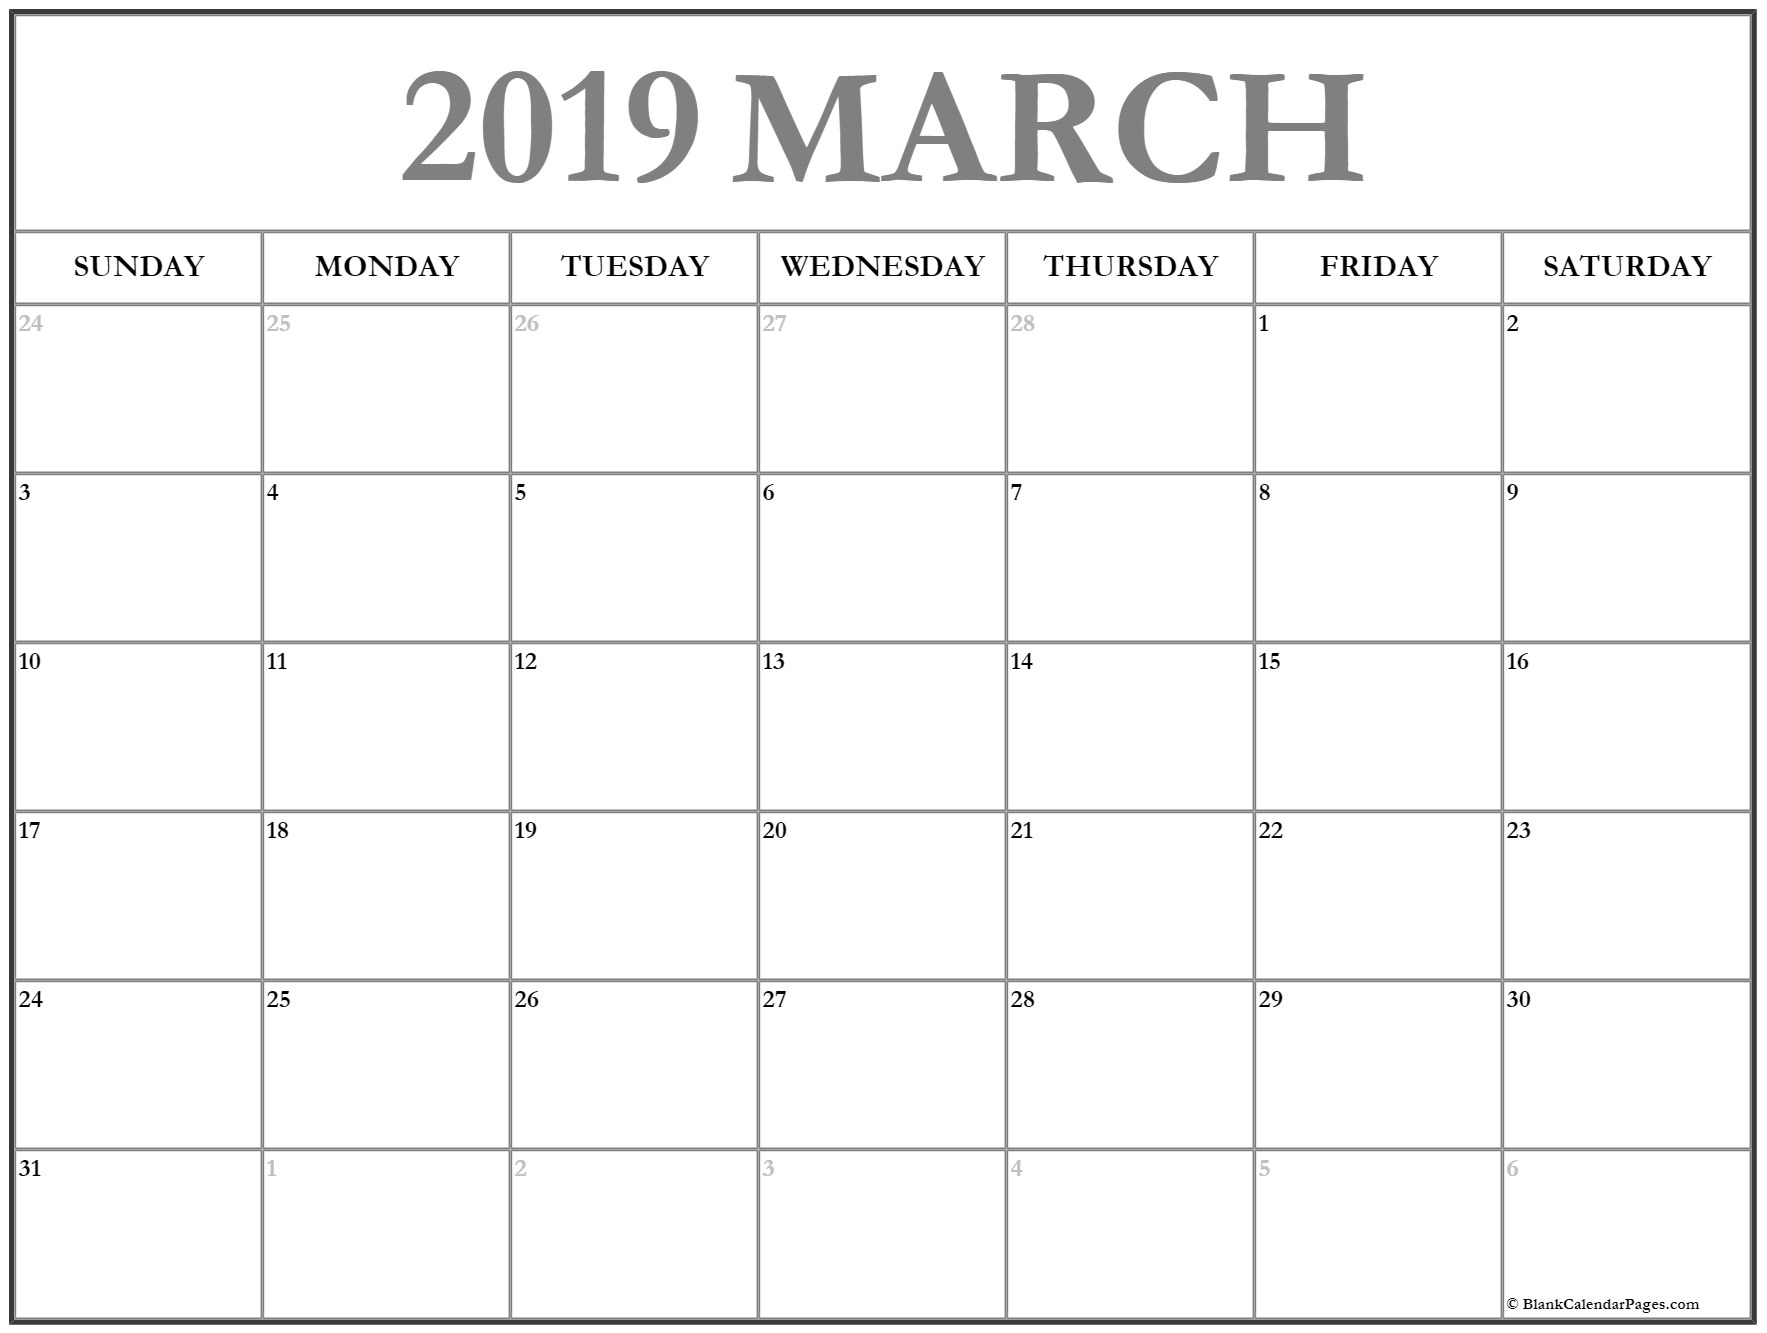 Editable Calendar Template March 2019